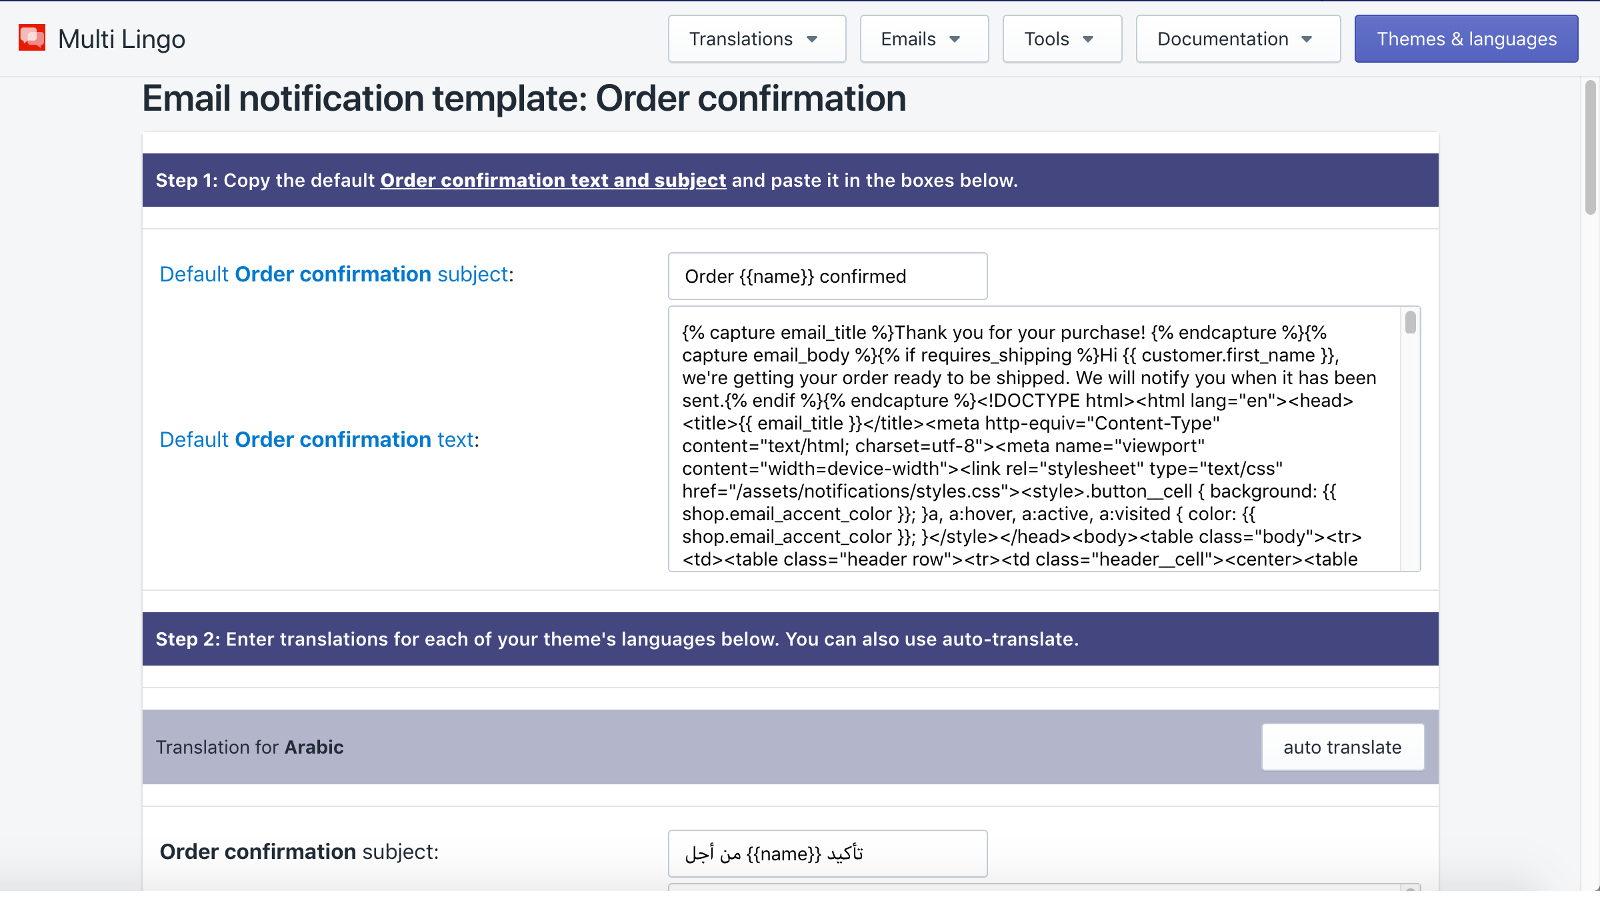 Notification Email translations